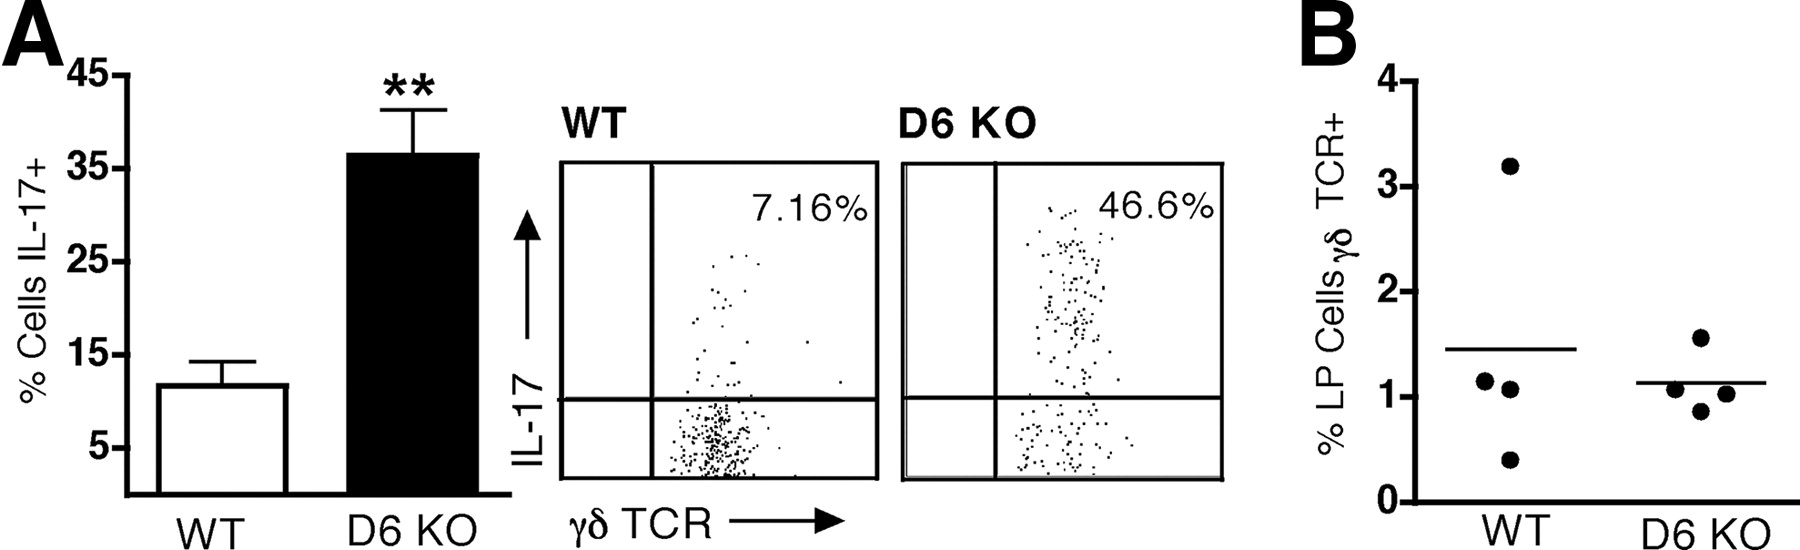 The Atypical Chemokine Receptor D6 Contributes to the Development of